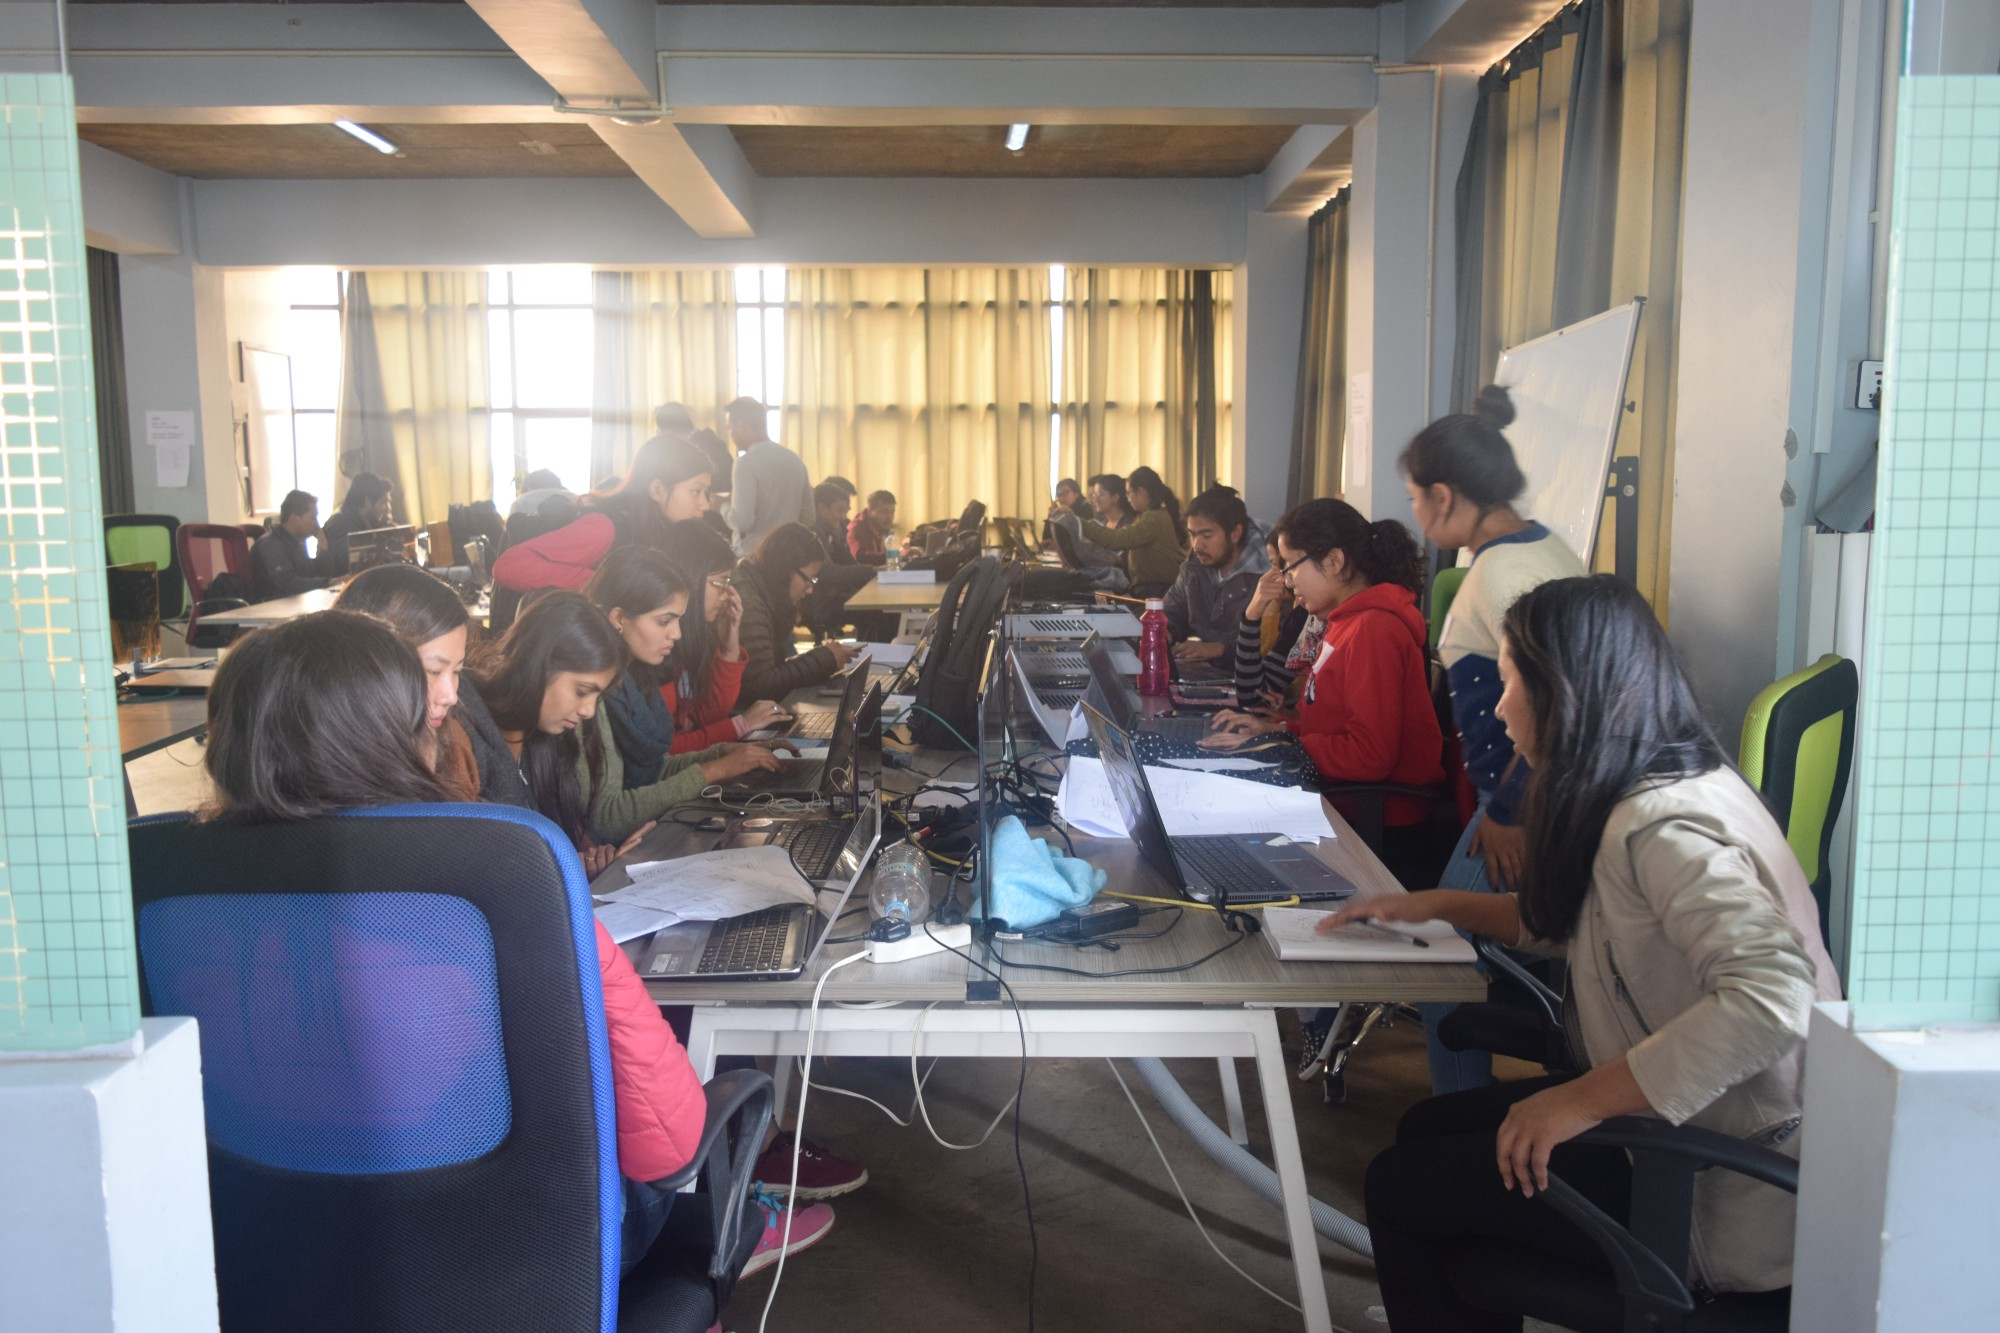 German Development Cooperation Leapfrog Technology Facts Nepal And Open Partnered With CSIT Association Of Women Leaders In